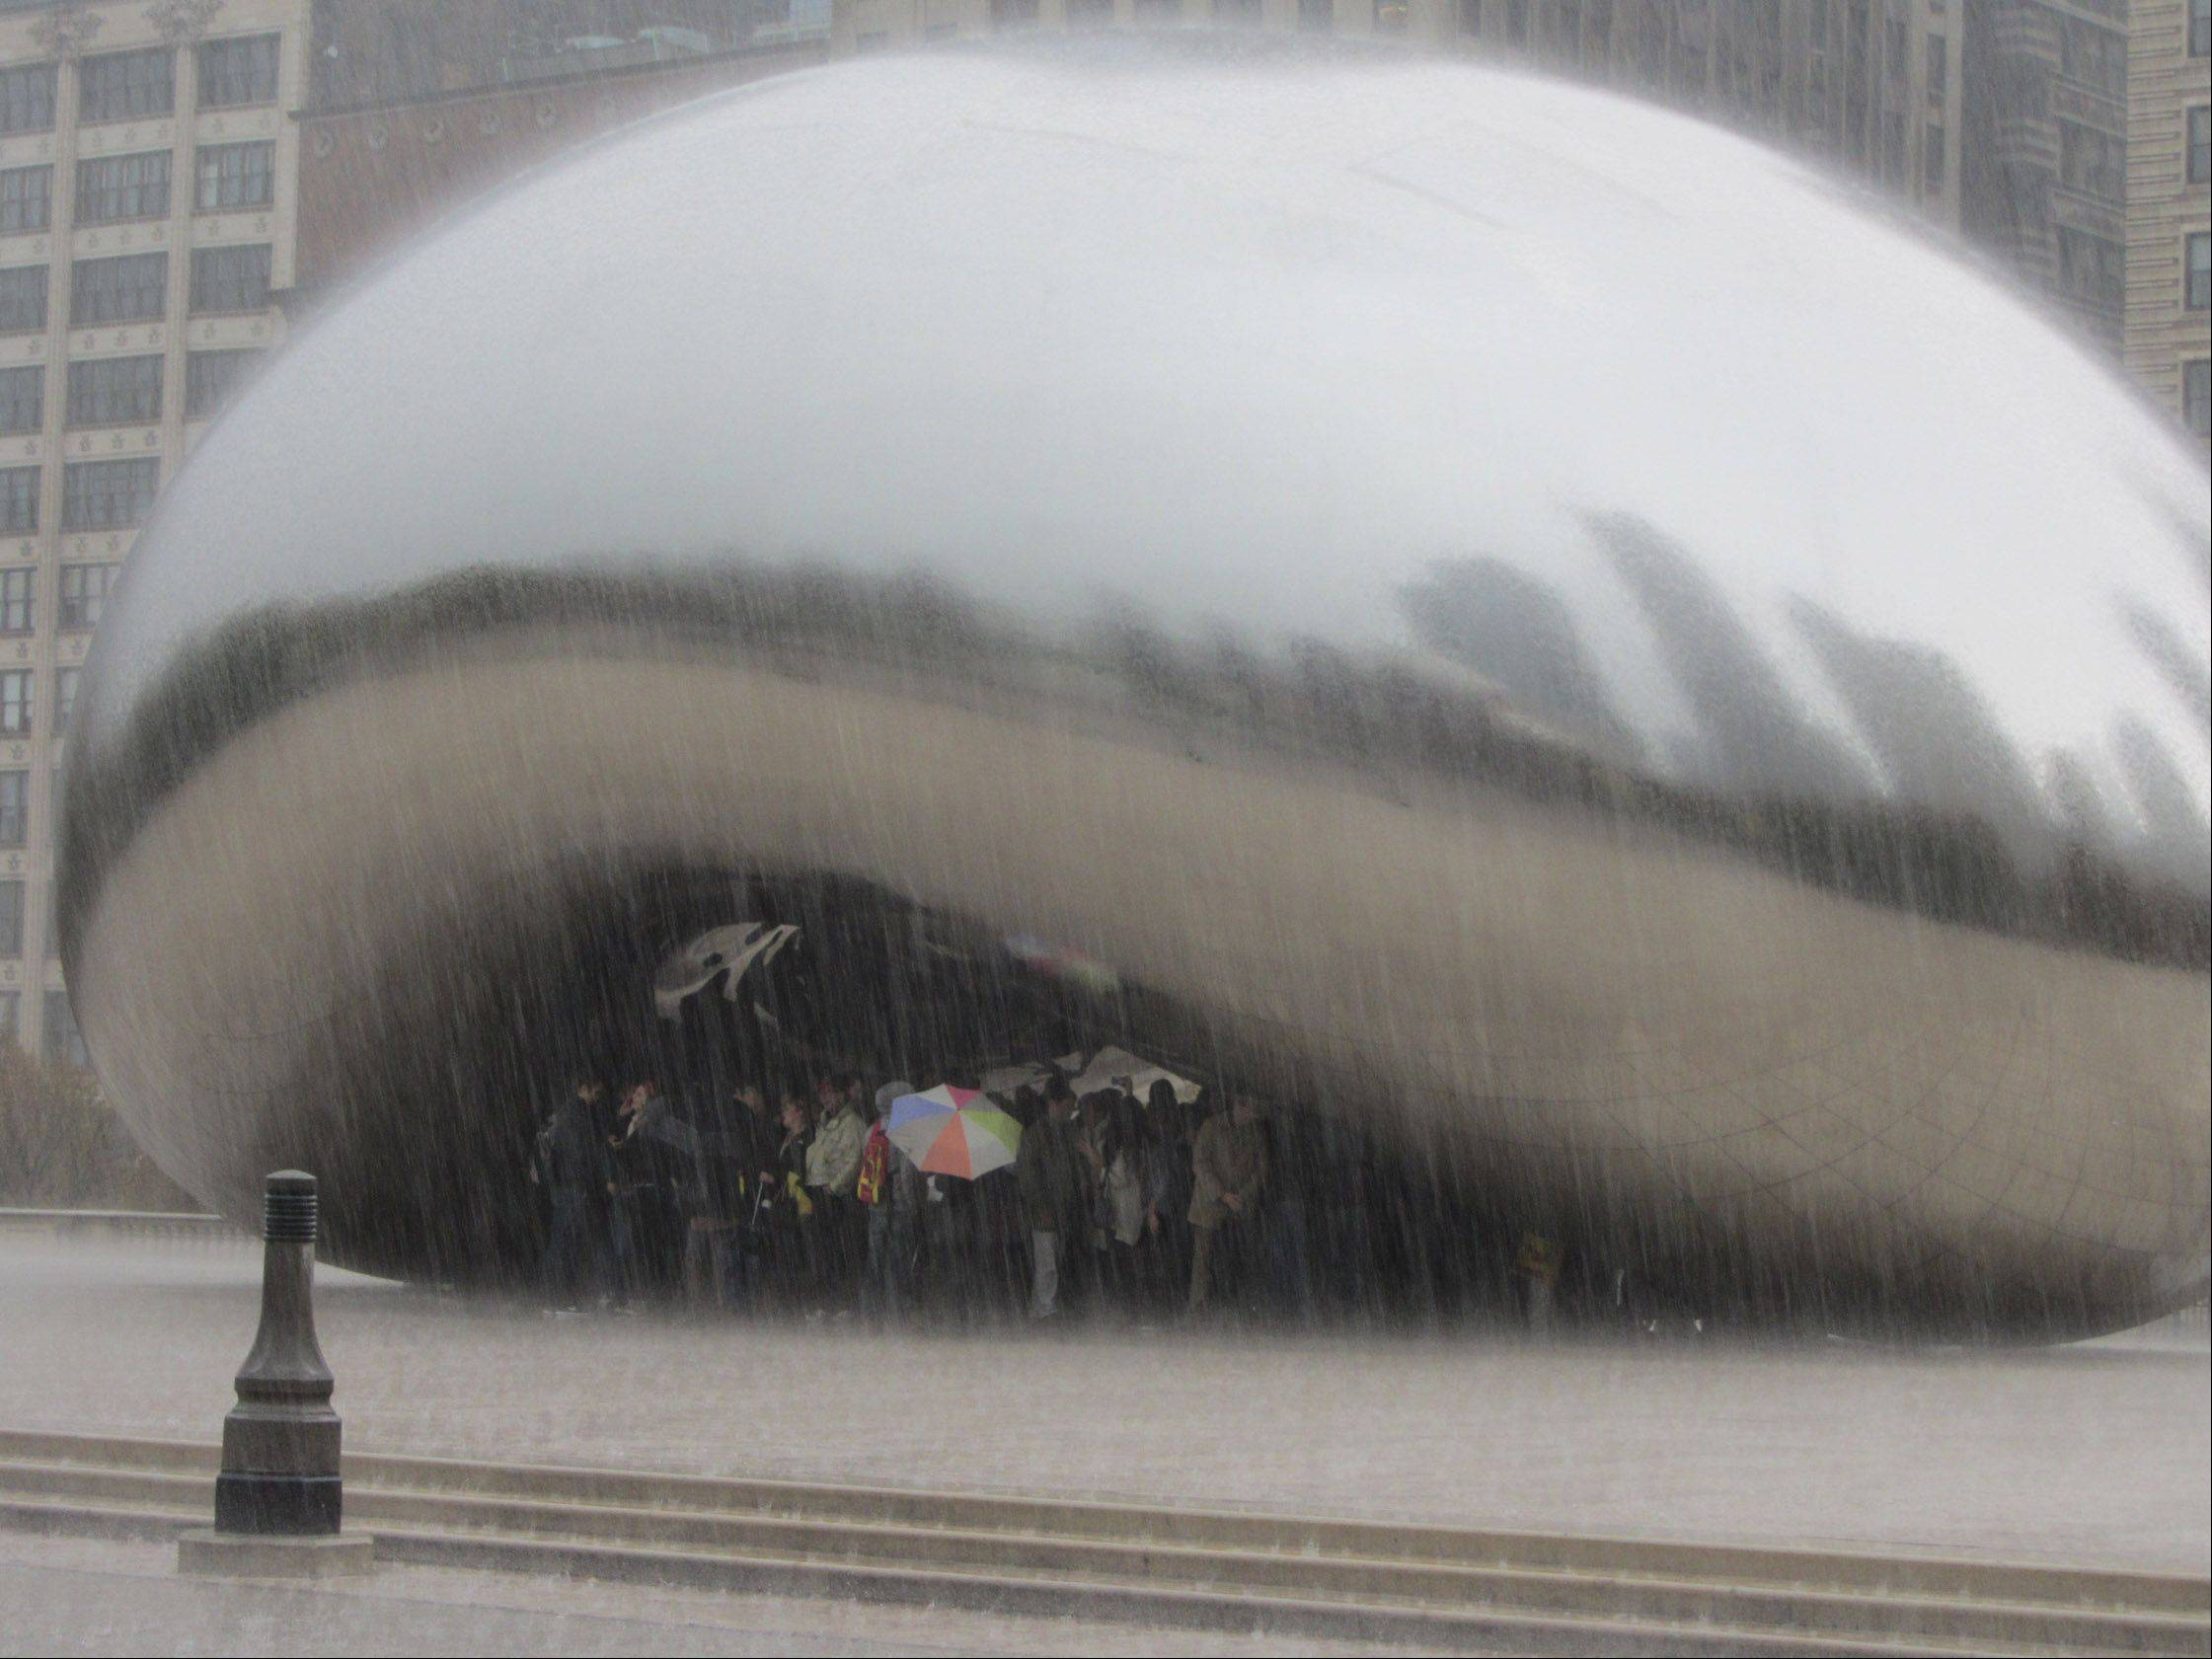 As the rain turned to a downpour, most visitors who came to see The Bean at Millennium Park in downtown Chicago were caught without umbrellas earlier this month. The all huddled under The Bean and waited for the thunderstorm to pass.